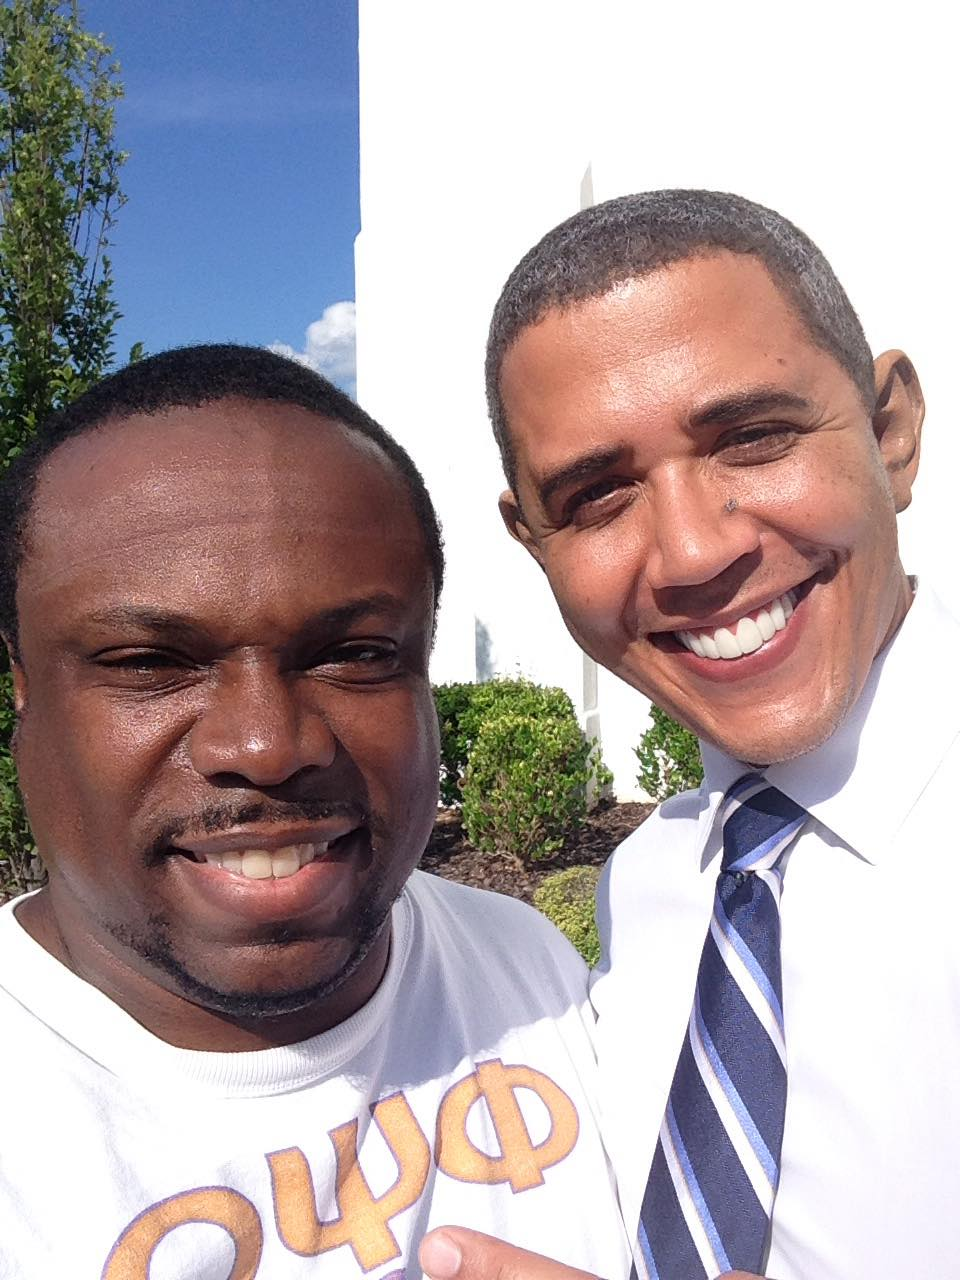 Obama Impersonator - Comic Reggie Brown